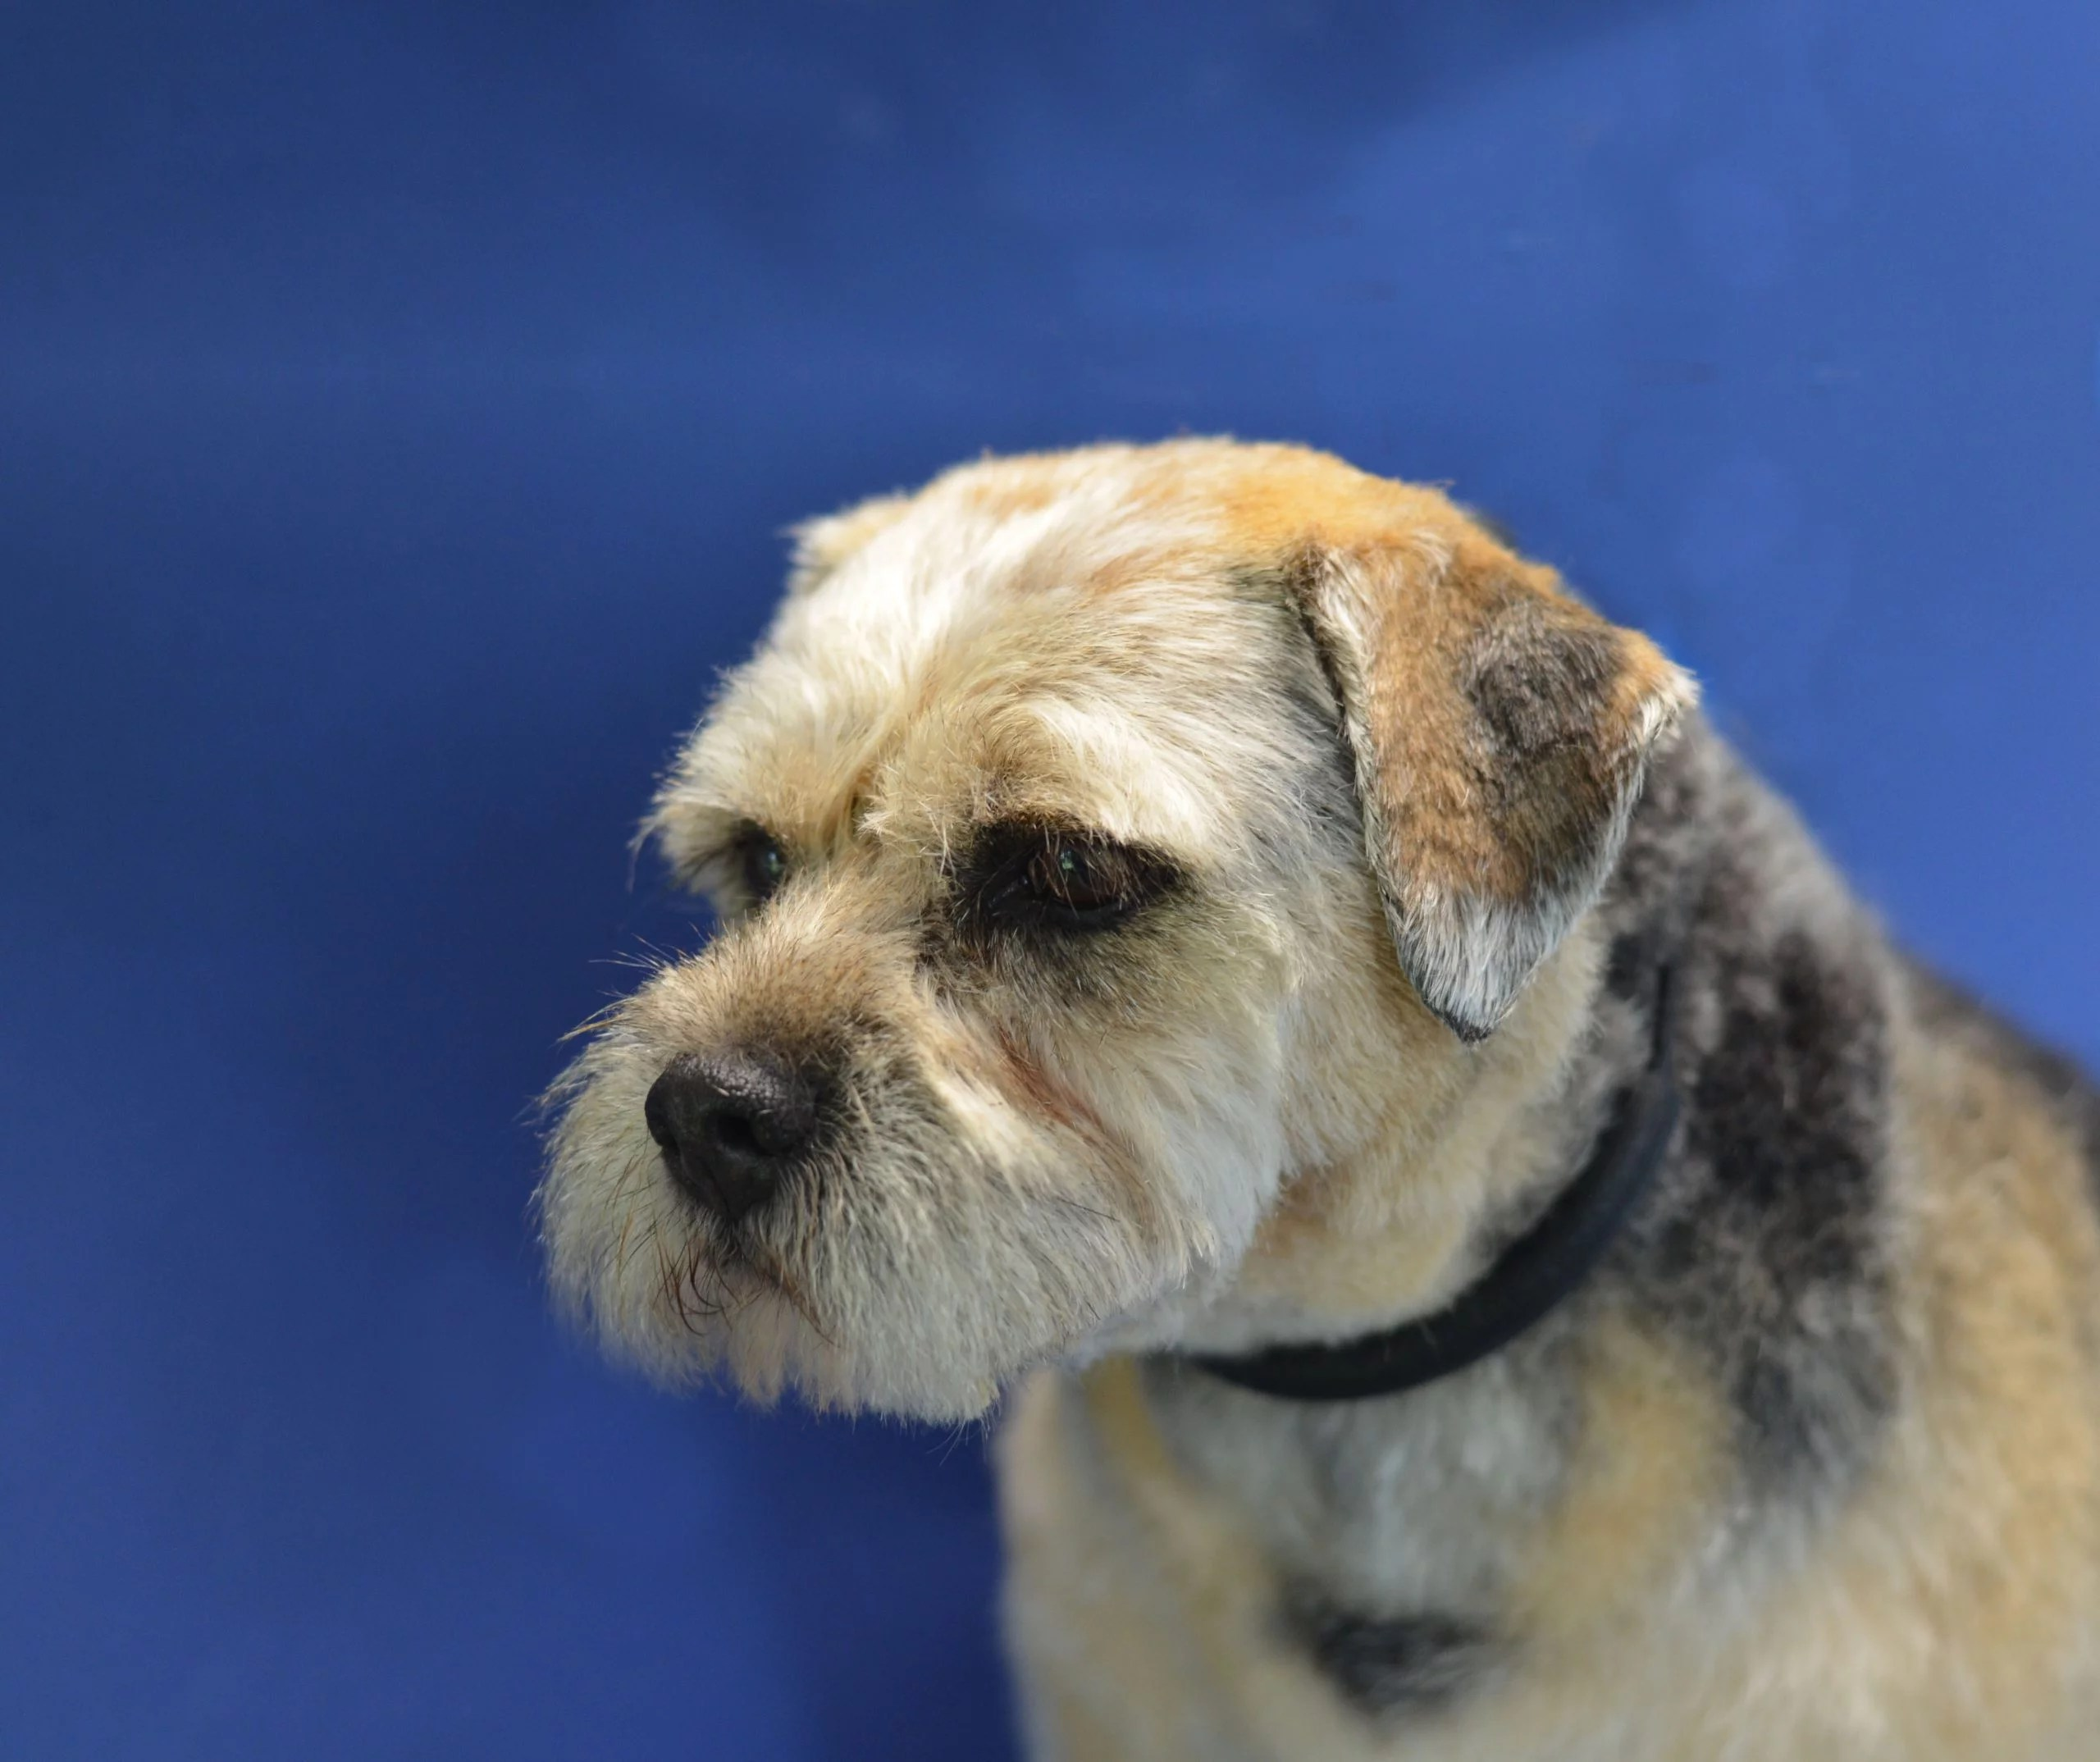 Border Terrier on a blue background